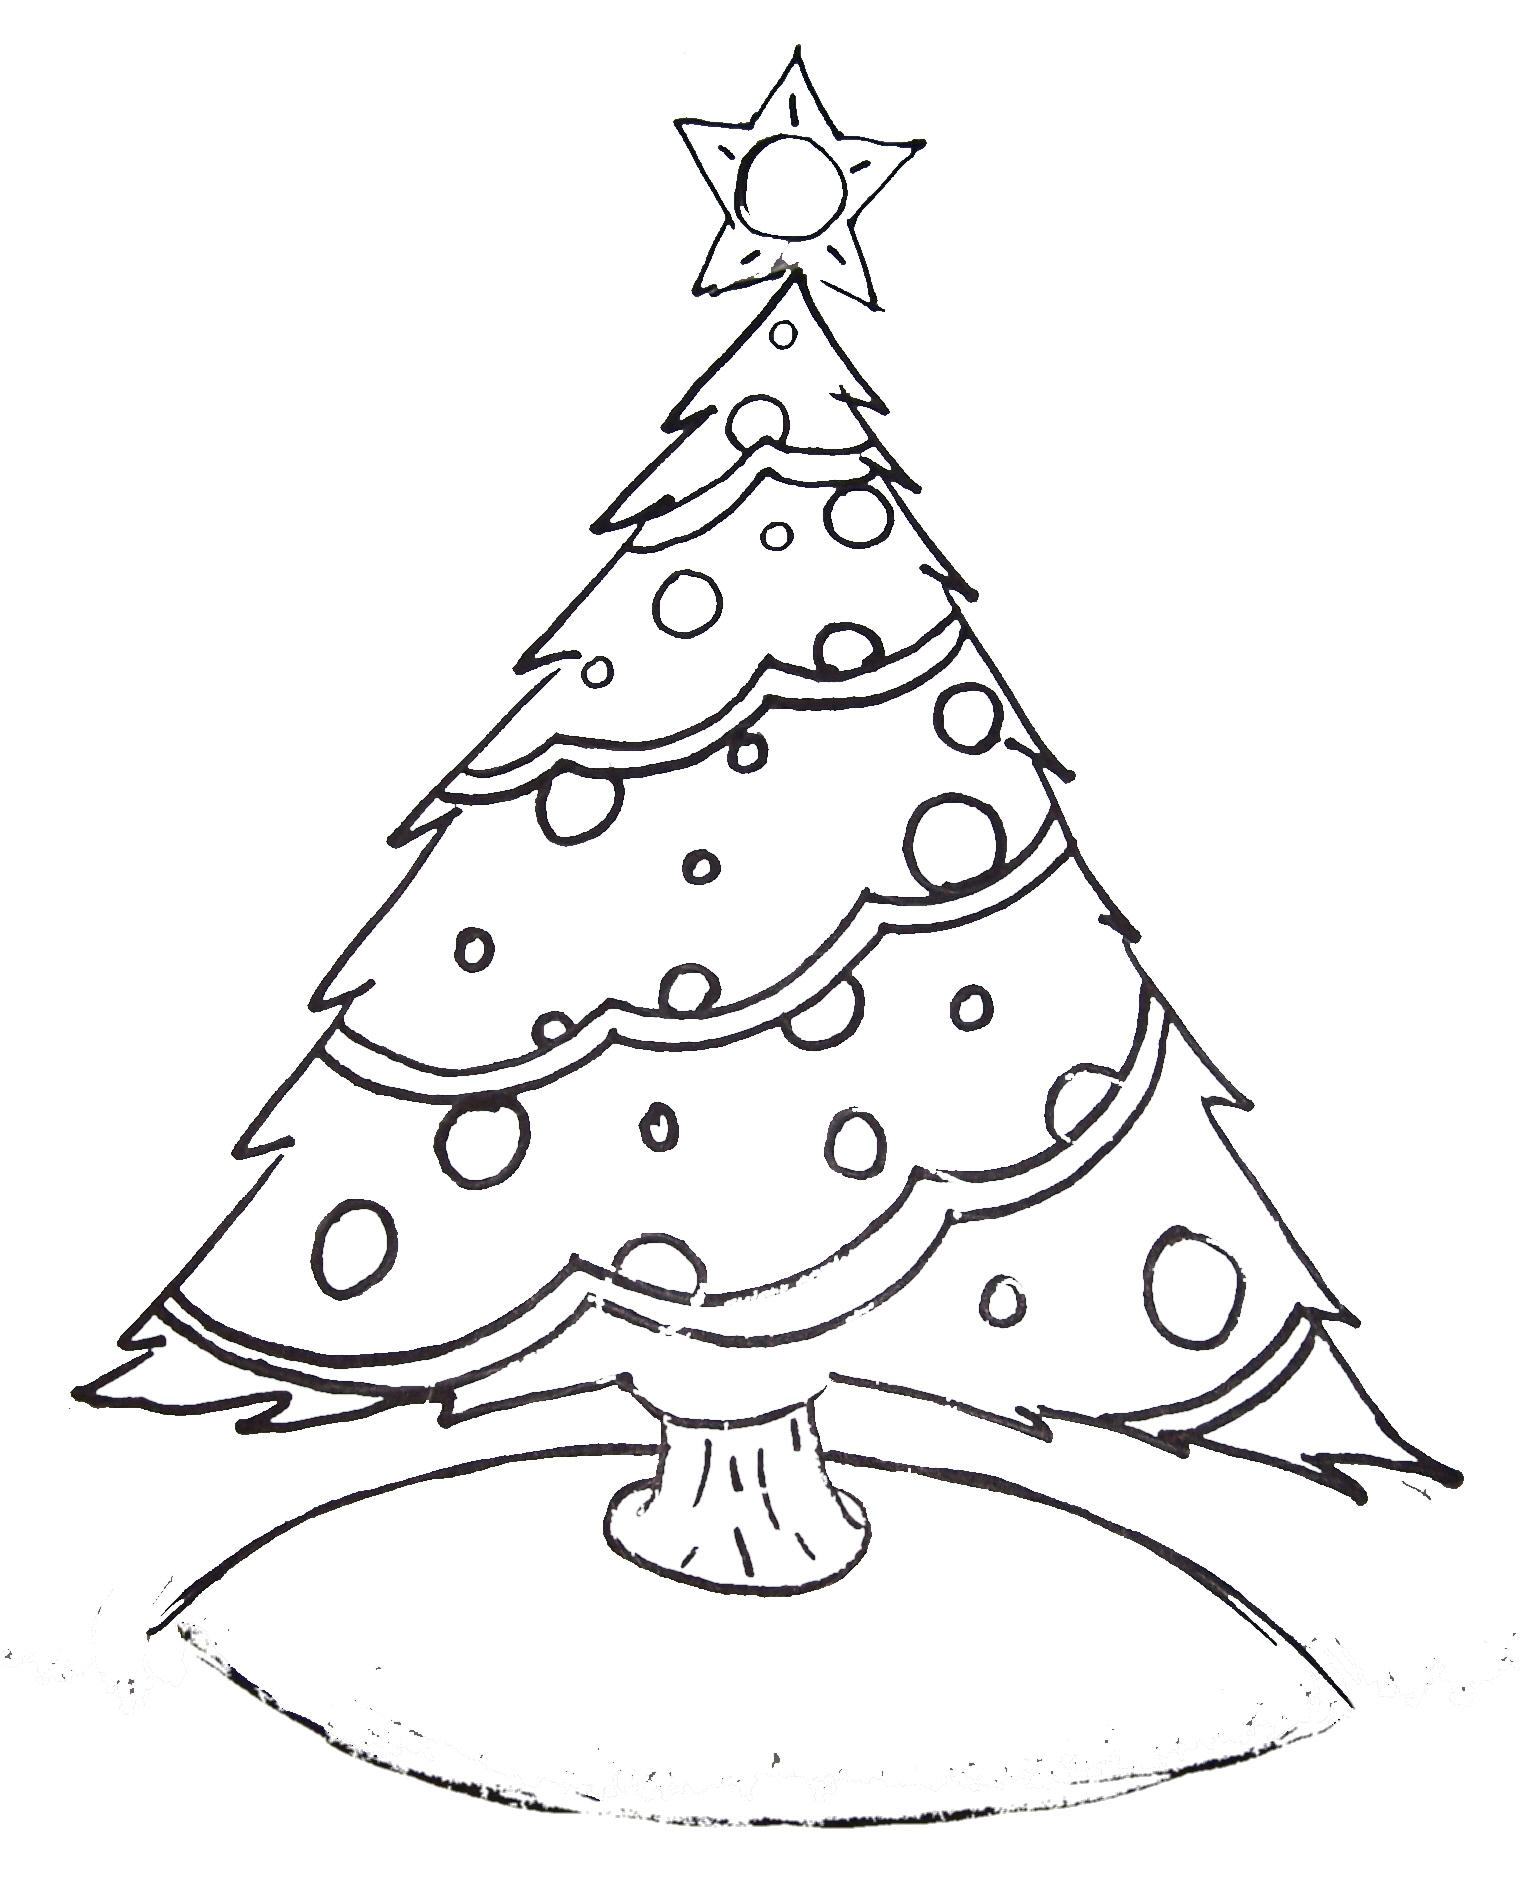 Free Printable Christmas Tree Coloring Pages  Free Christmas Tree Templates